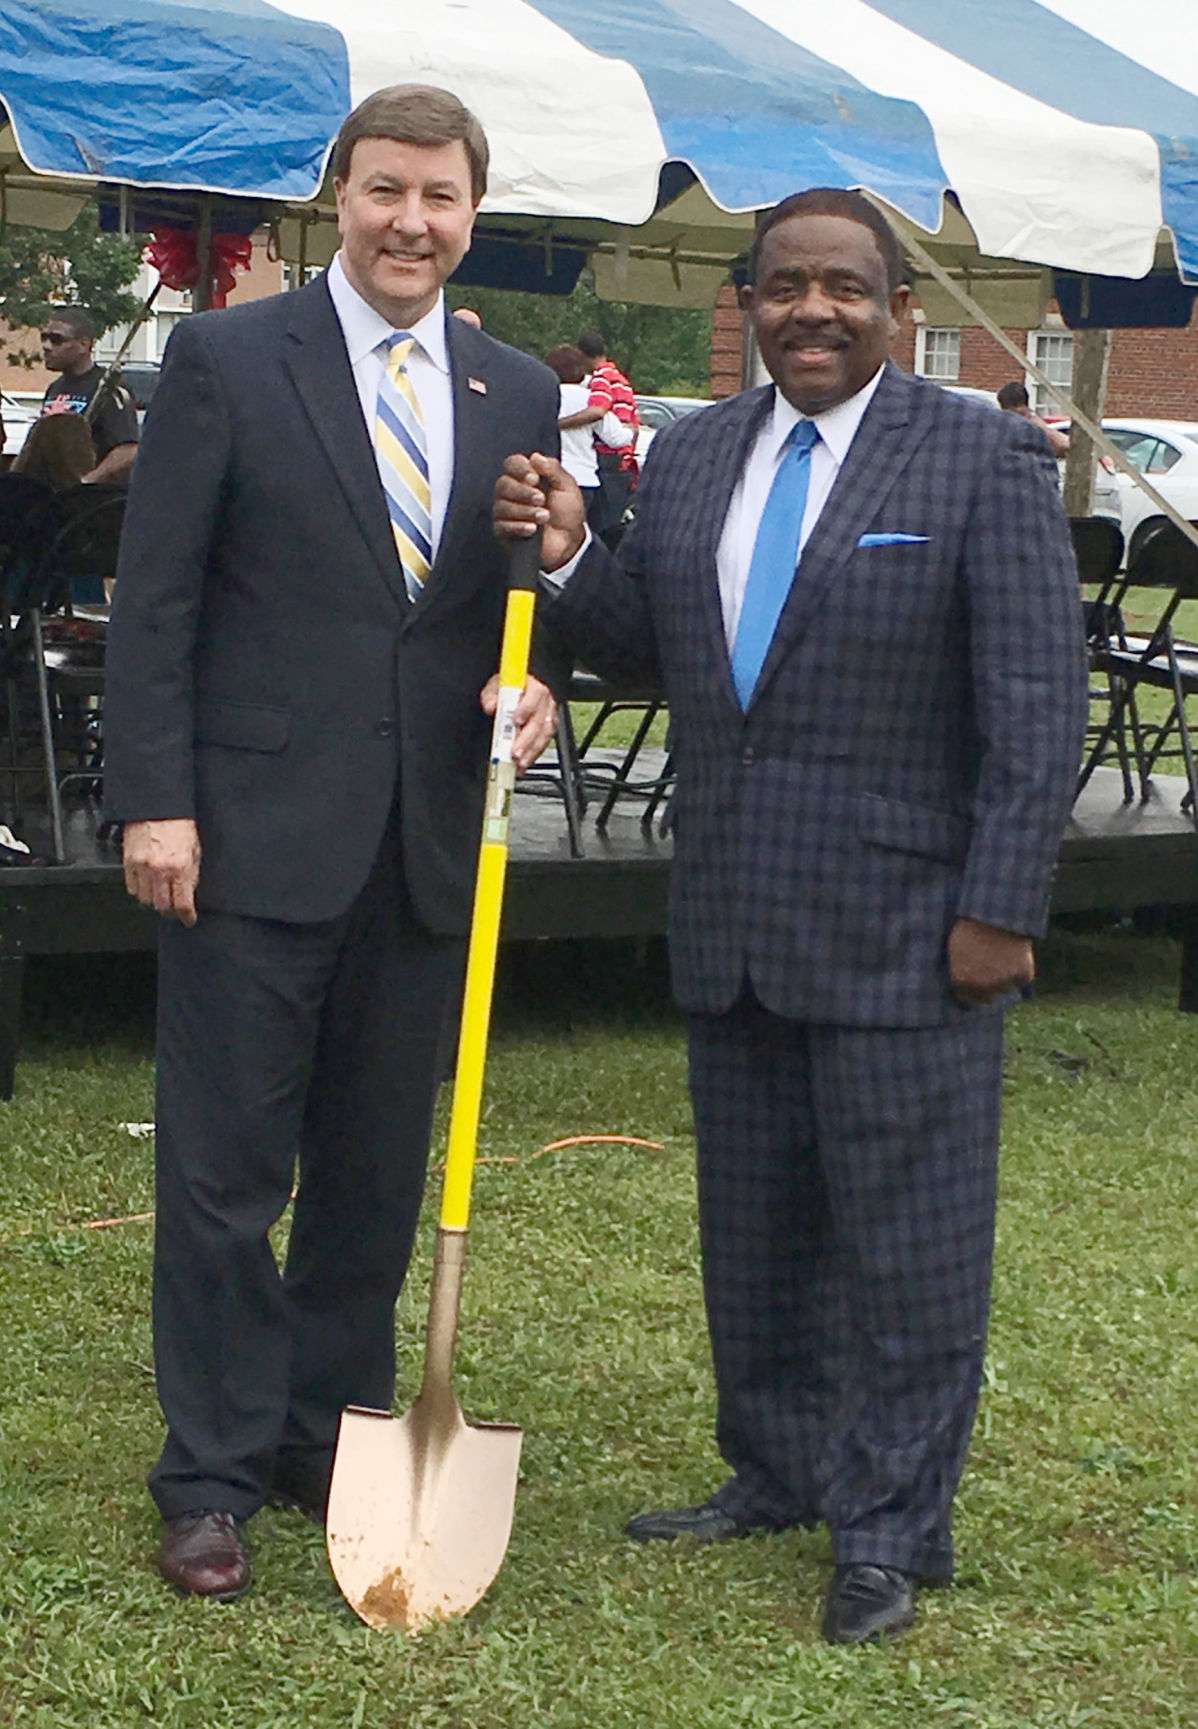 U.S. Rep. Mike Rogers, Dr. Billy Hawkins at Friday's groundbreaking ceremony